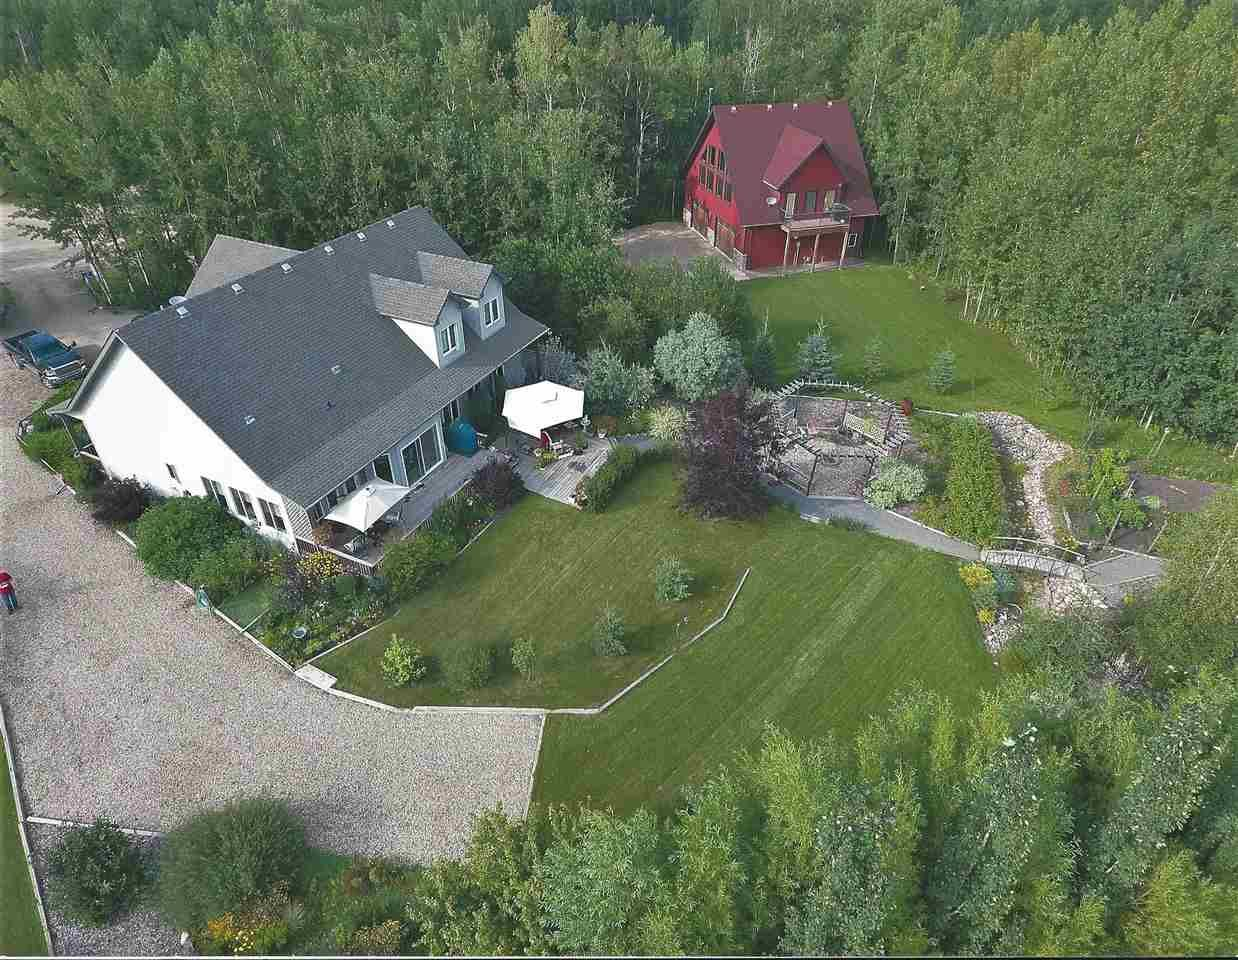 Main Photo: #112 462028 Rge Rd 11: Rural Wetaskiwin County House for sale : MLS®# E4230562